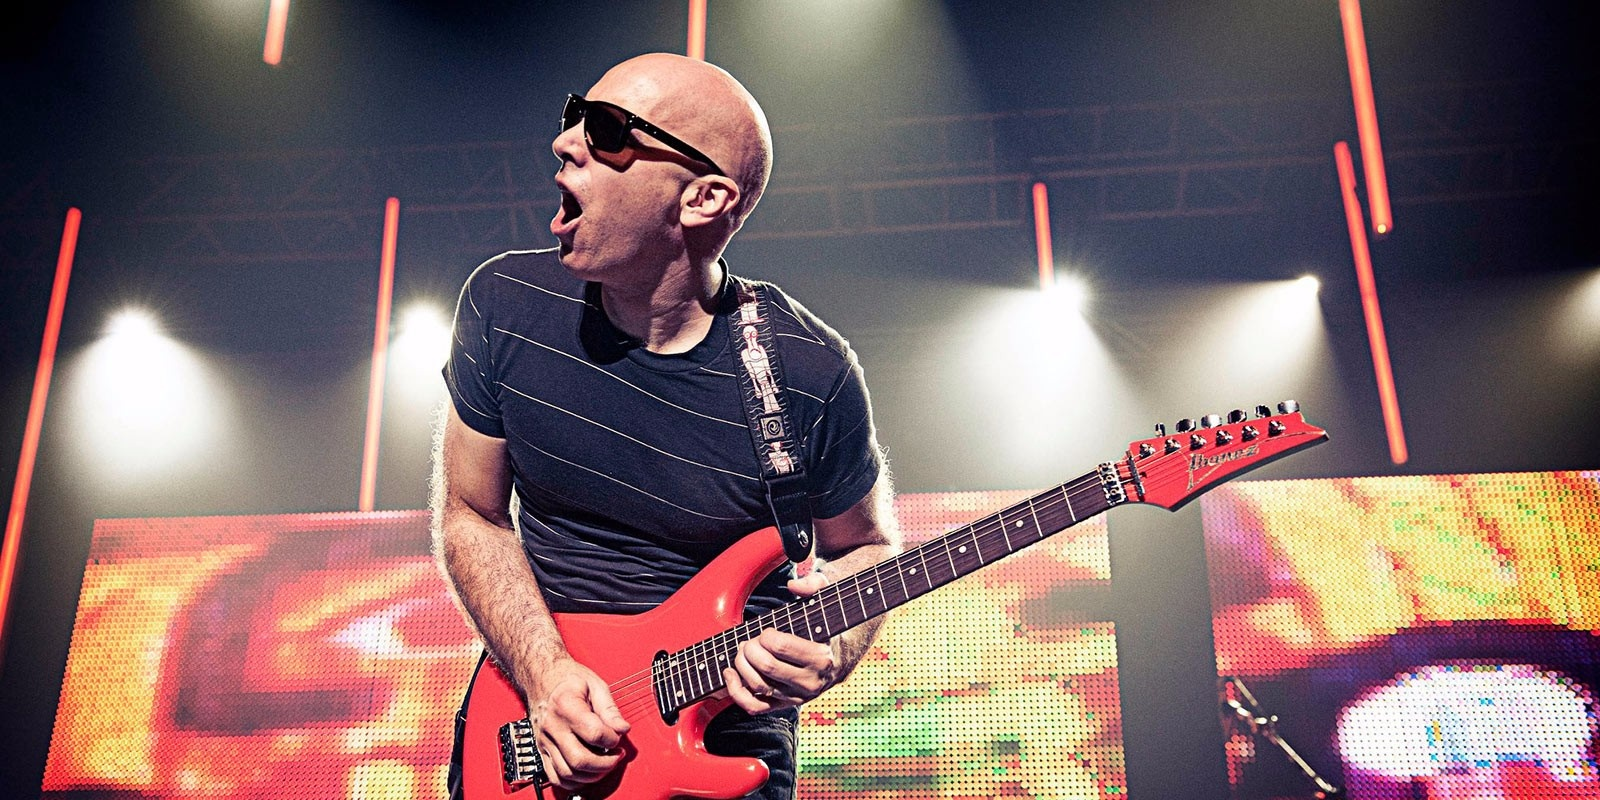 All-time great rock guitarist Joe Satriani returns to Singapore in 2017